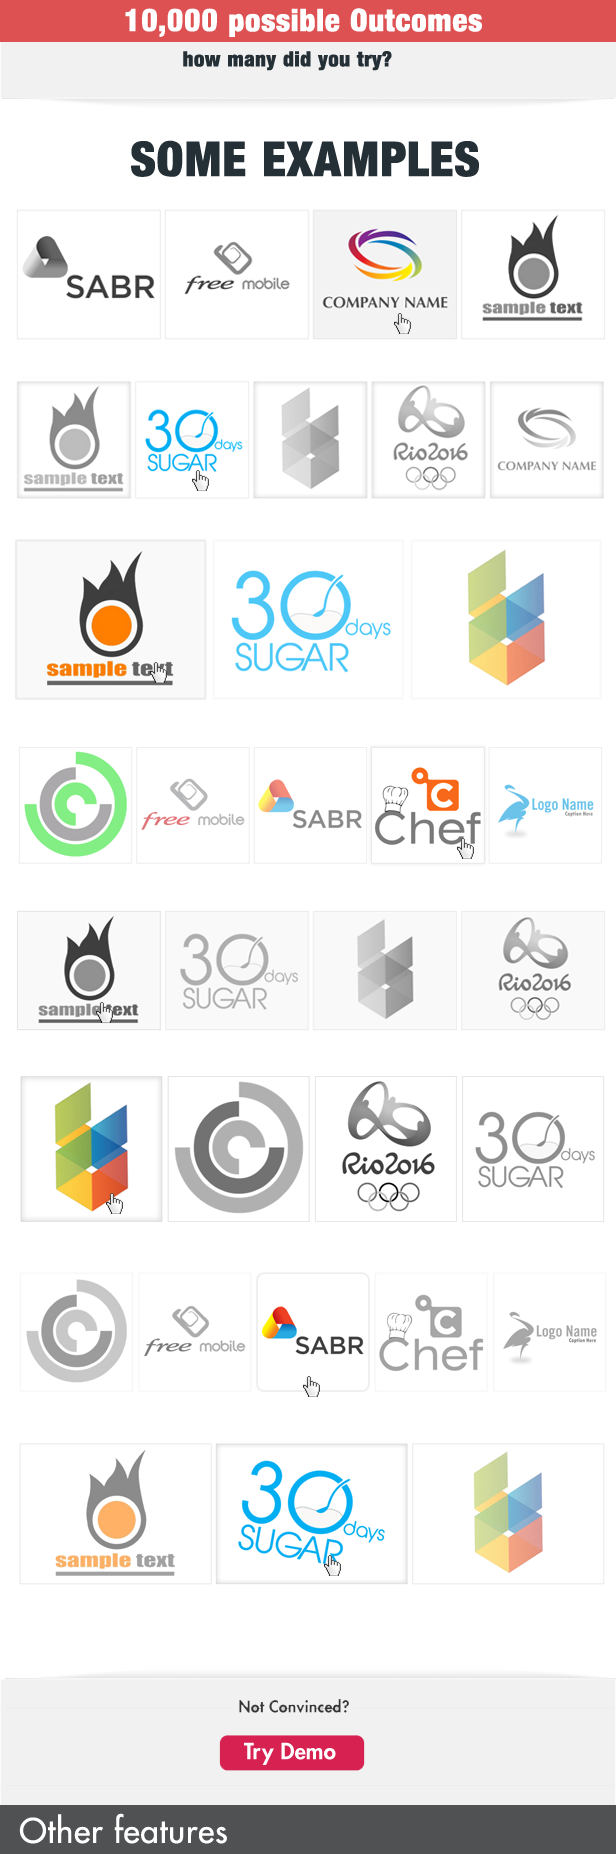 My Logos Showcase WordPress Plugin - 4 My Logos Showcase WordPress Plugin Nulled Free Download iml examples